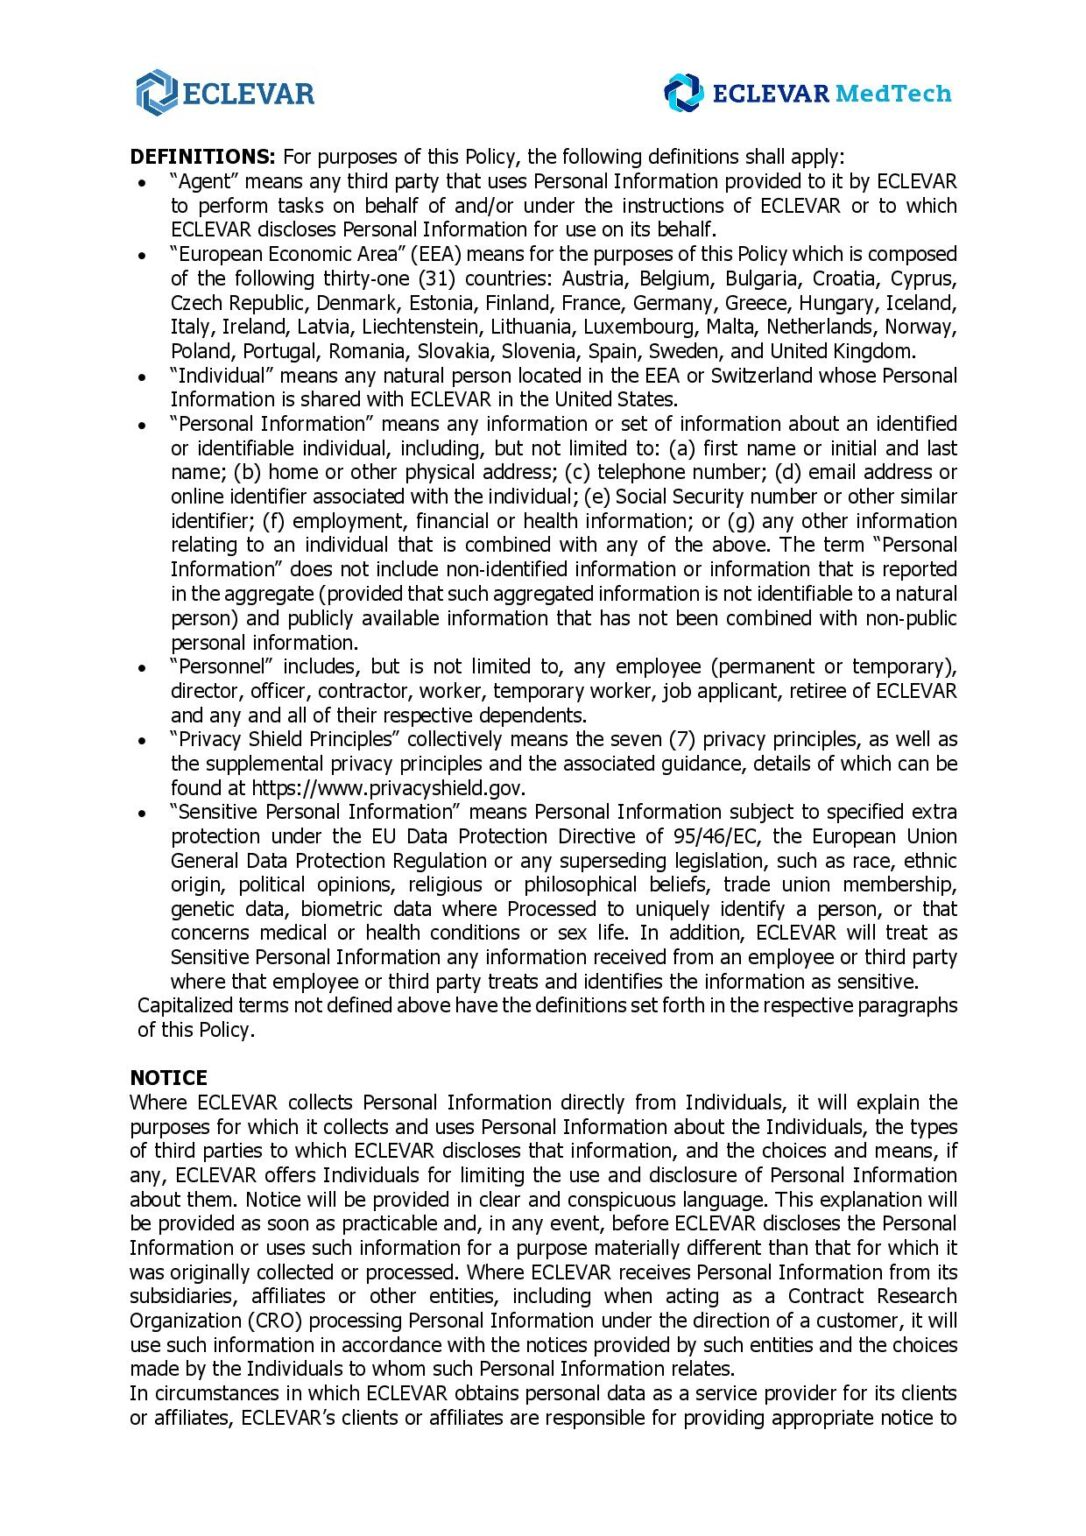 ECLEVAR PRIVACY 19 08 2020 _MedTech-page-010